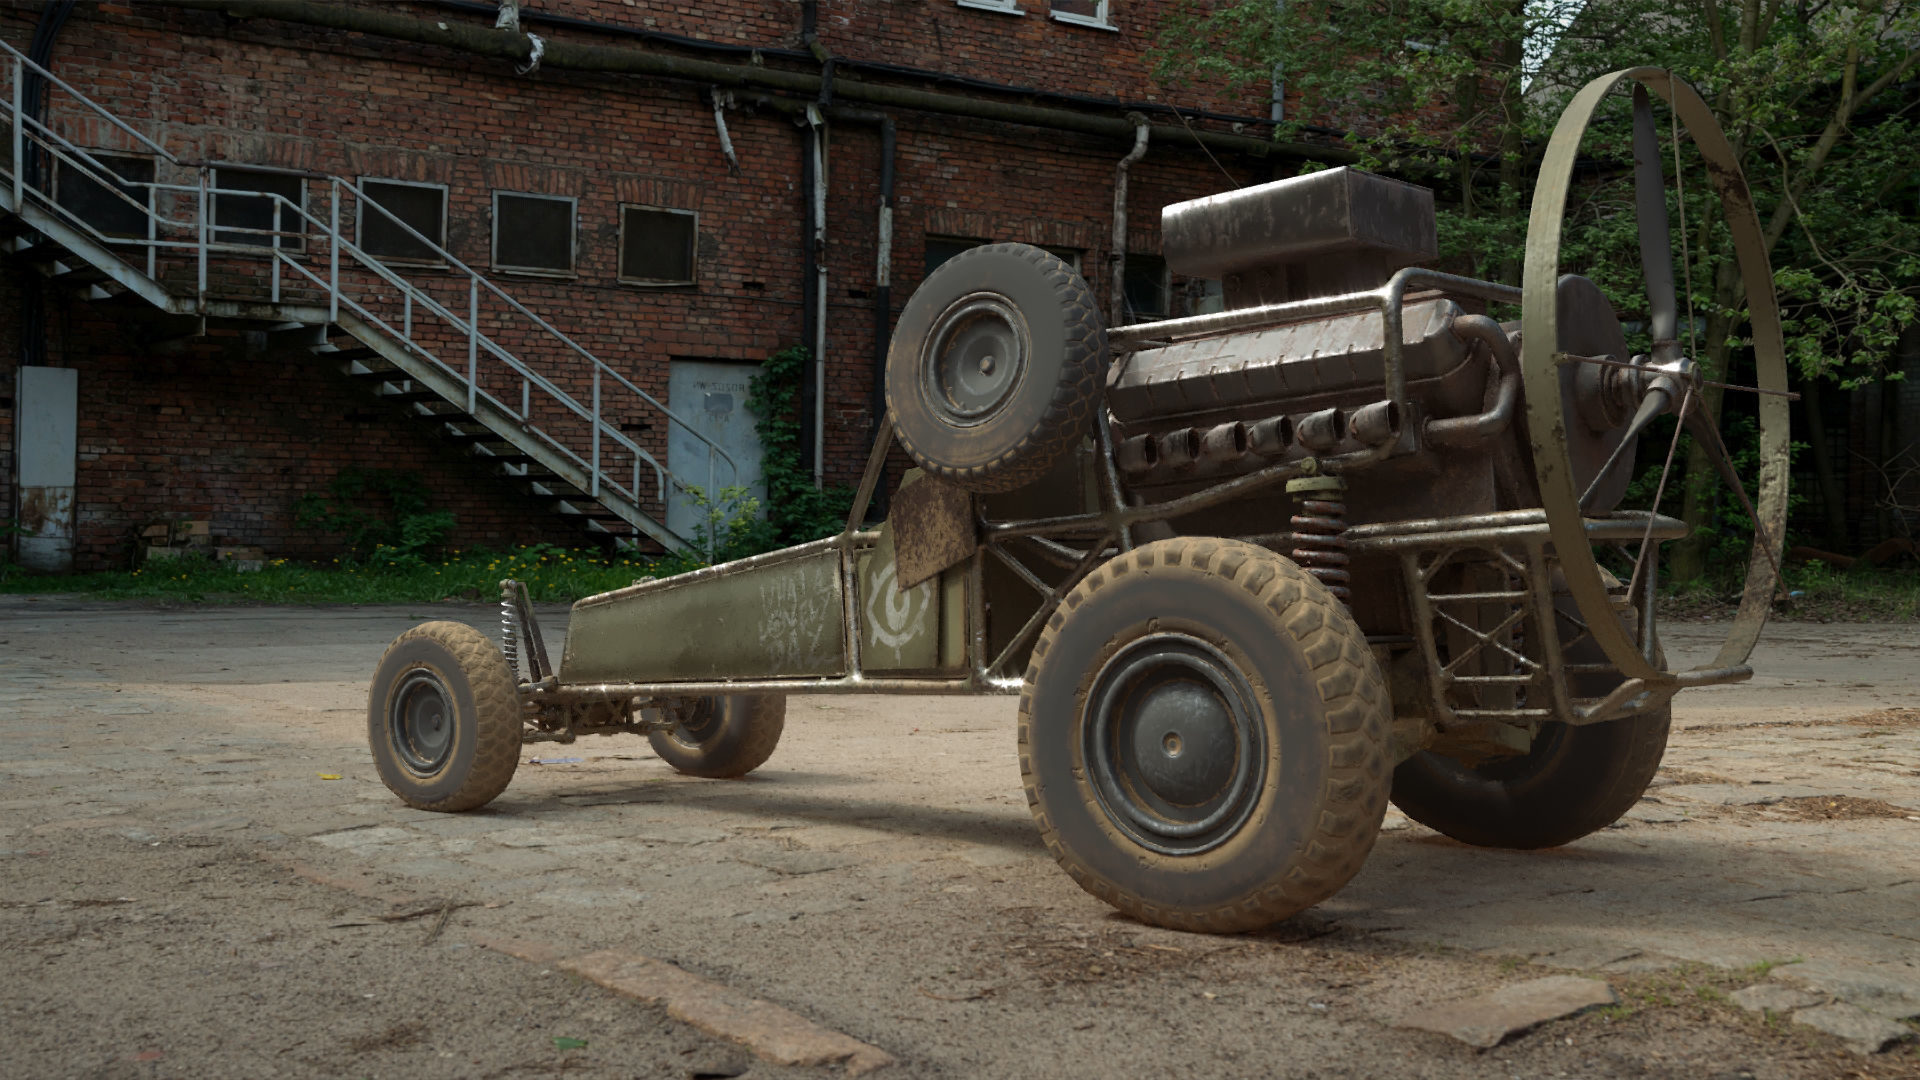 DB-5 scout vehicle